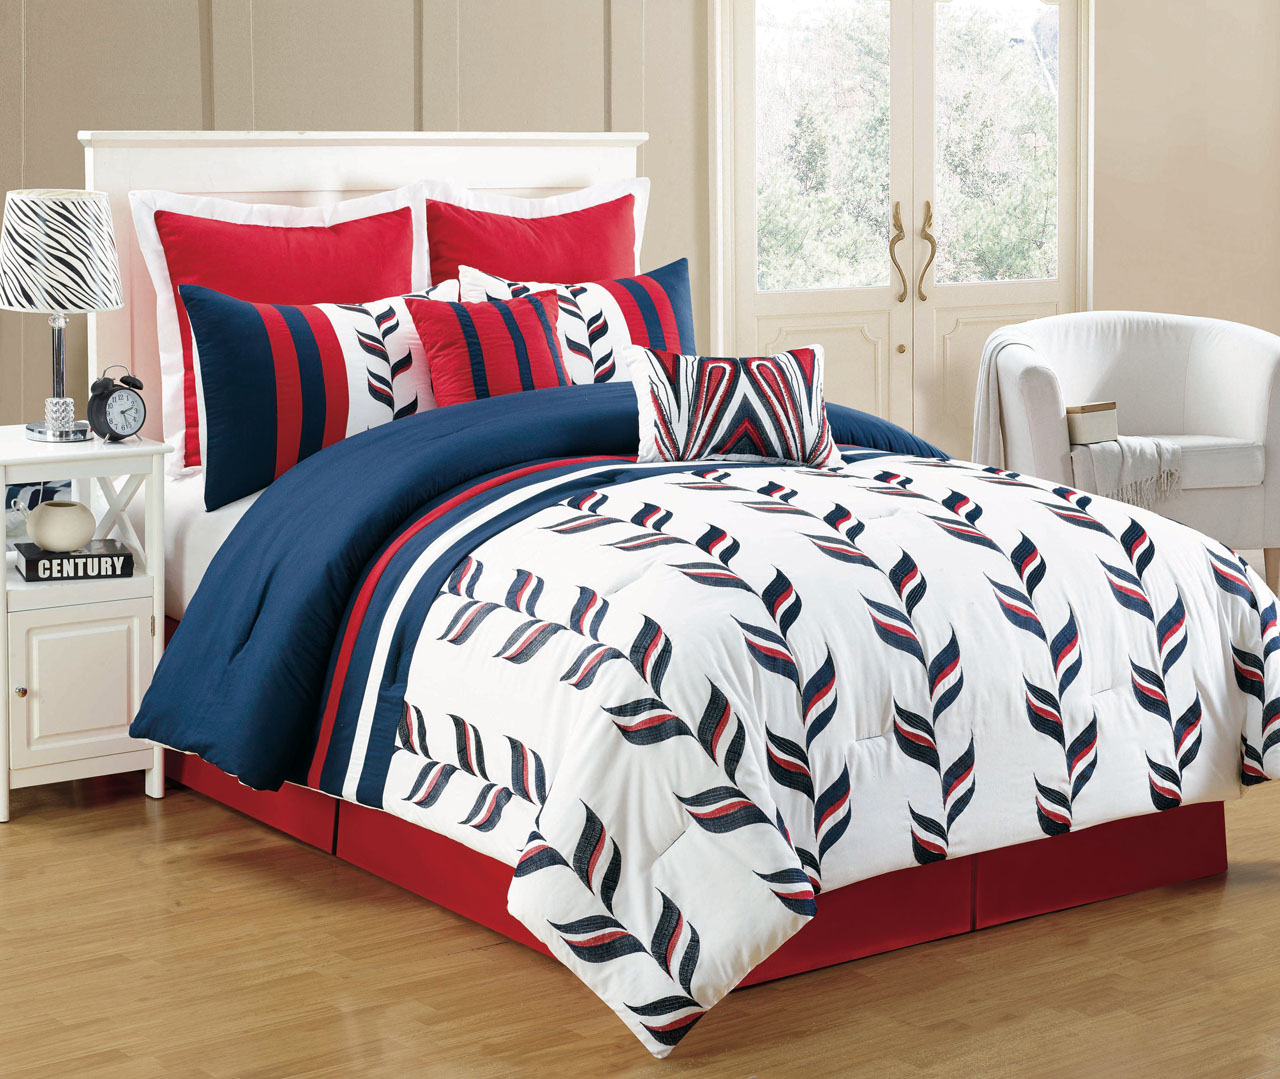 12 piece king fusion red and blue bed in a bag set